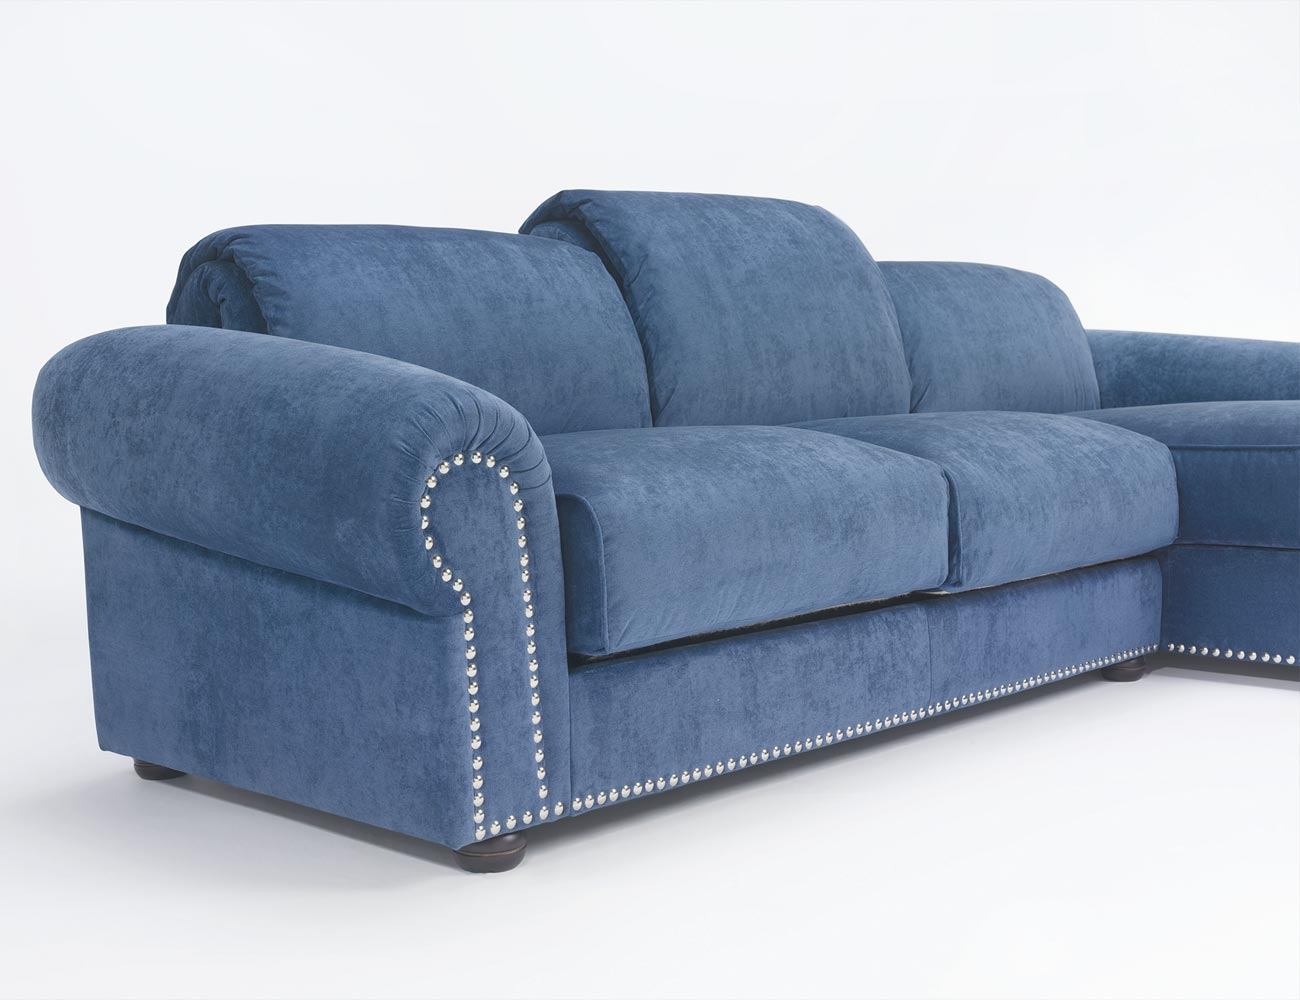 Sofa chaiselongue gran lujo decorativo azul 147